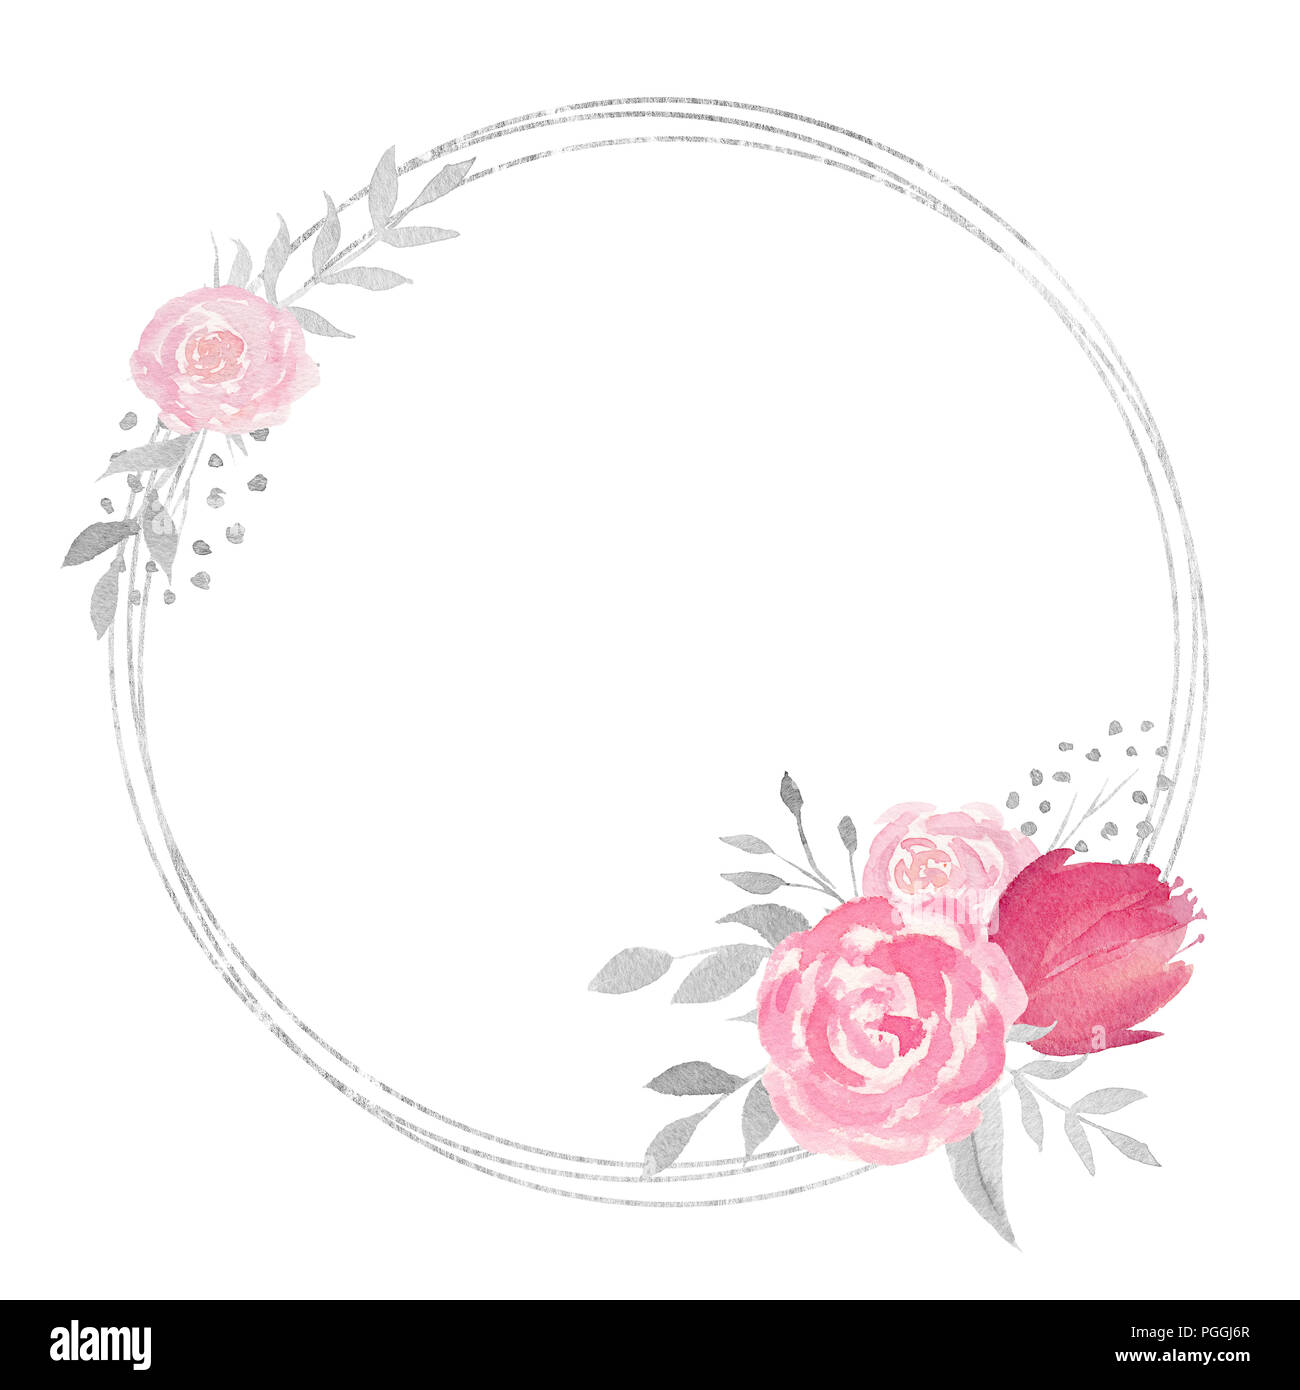 Watercolor floral frame with rose, leaves, butterflies, flowers and ...